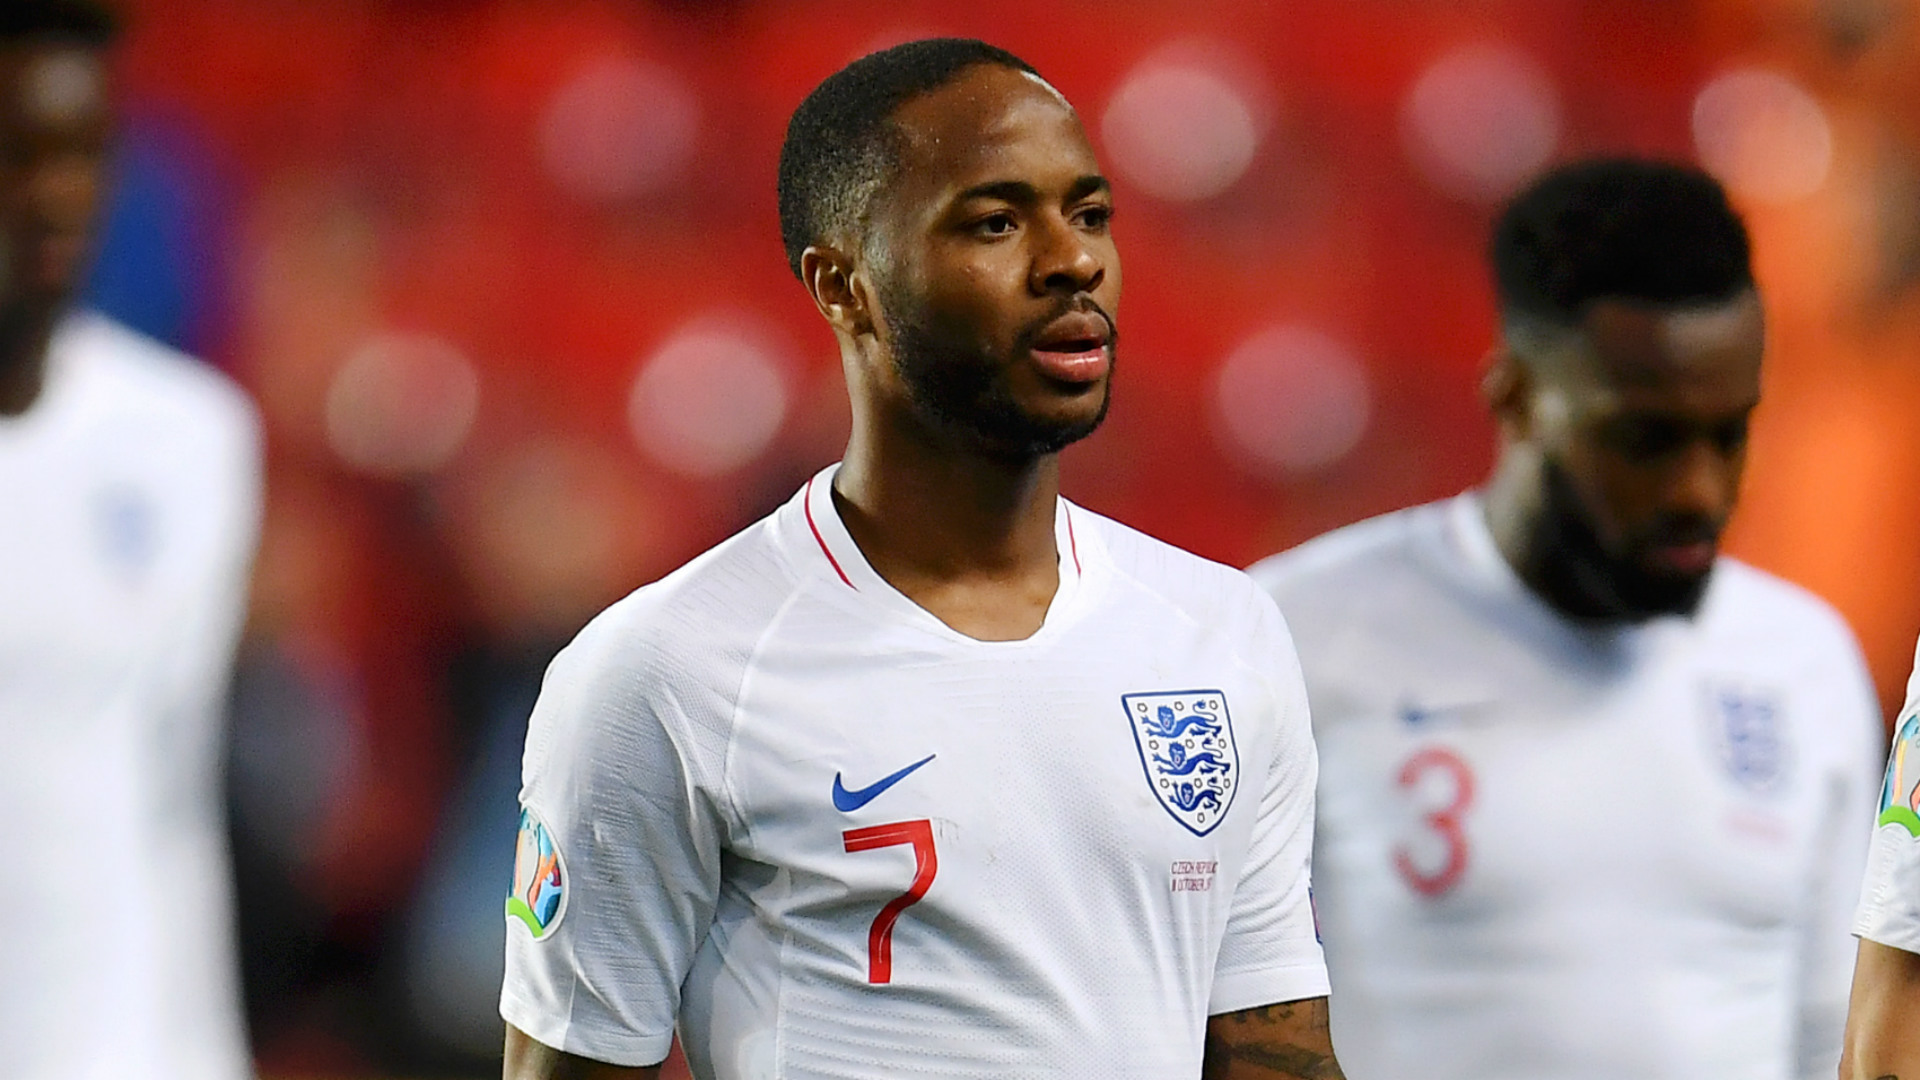 Southgate has made the right decision to drop Sterling - Neville